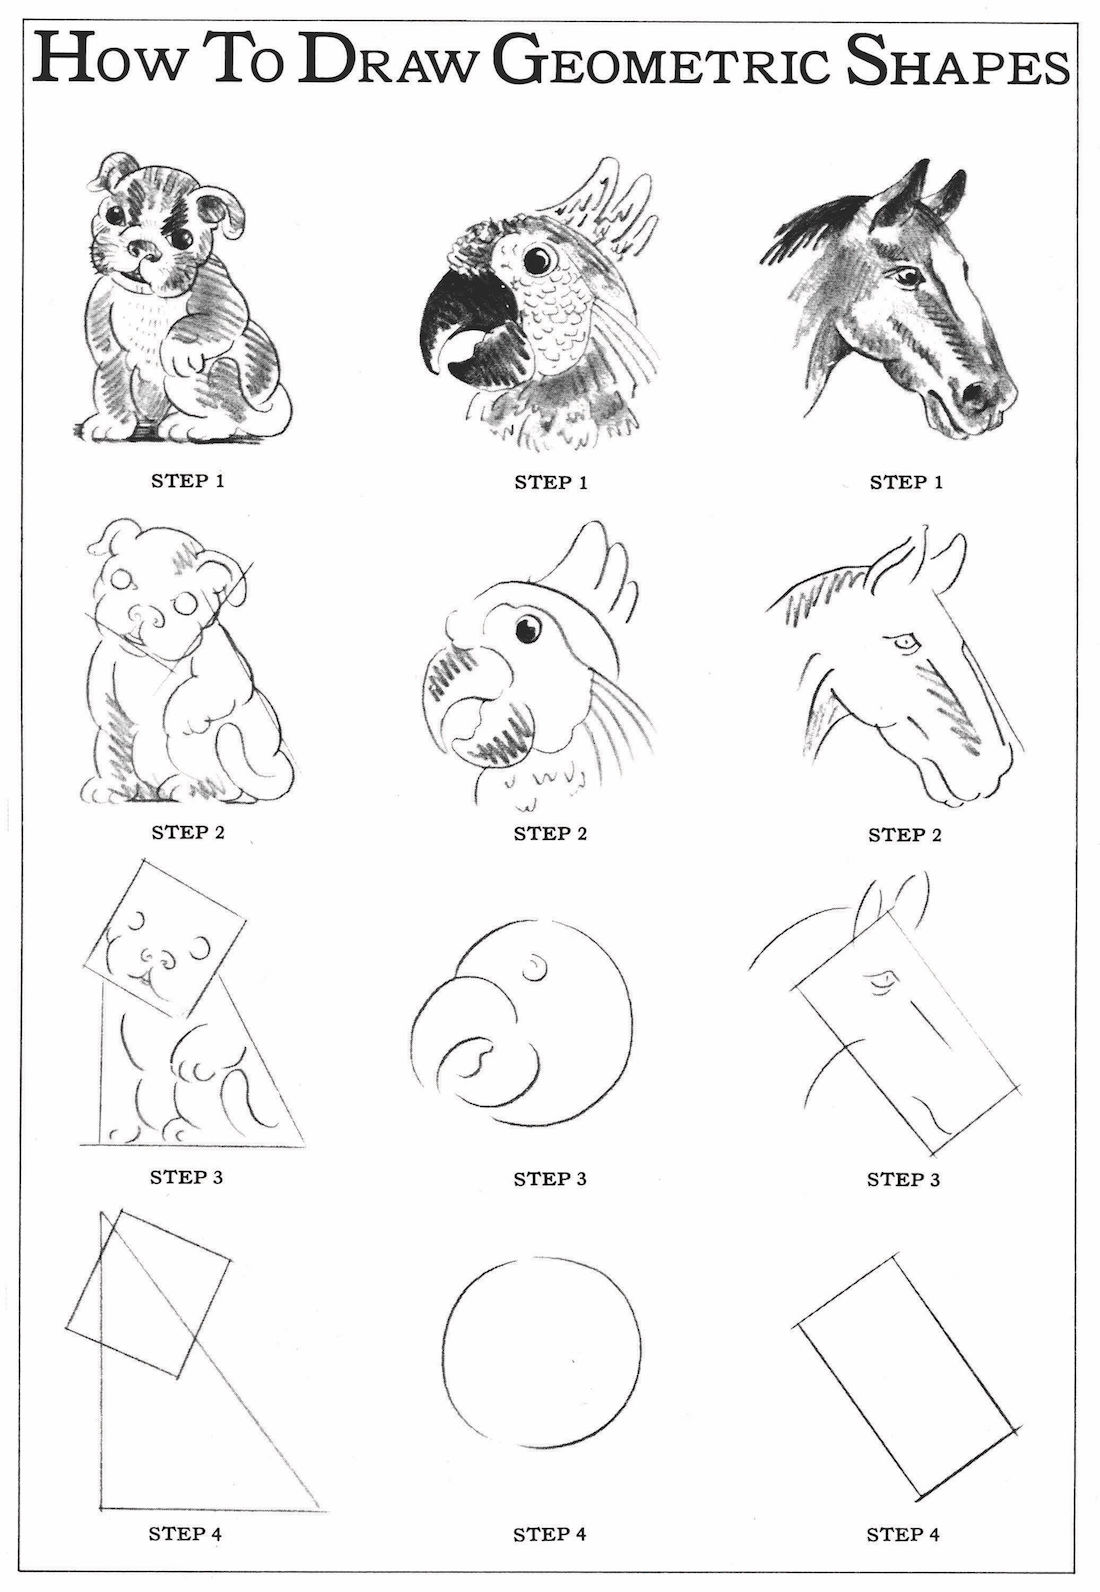 Chwast-poster-design-How-To-Draw